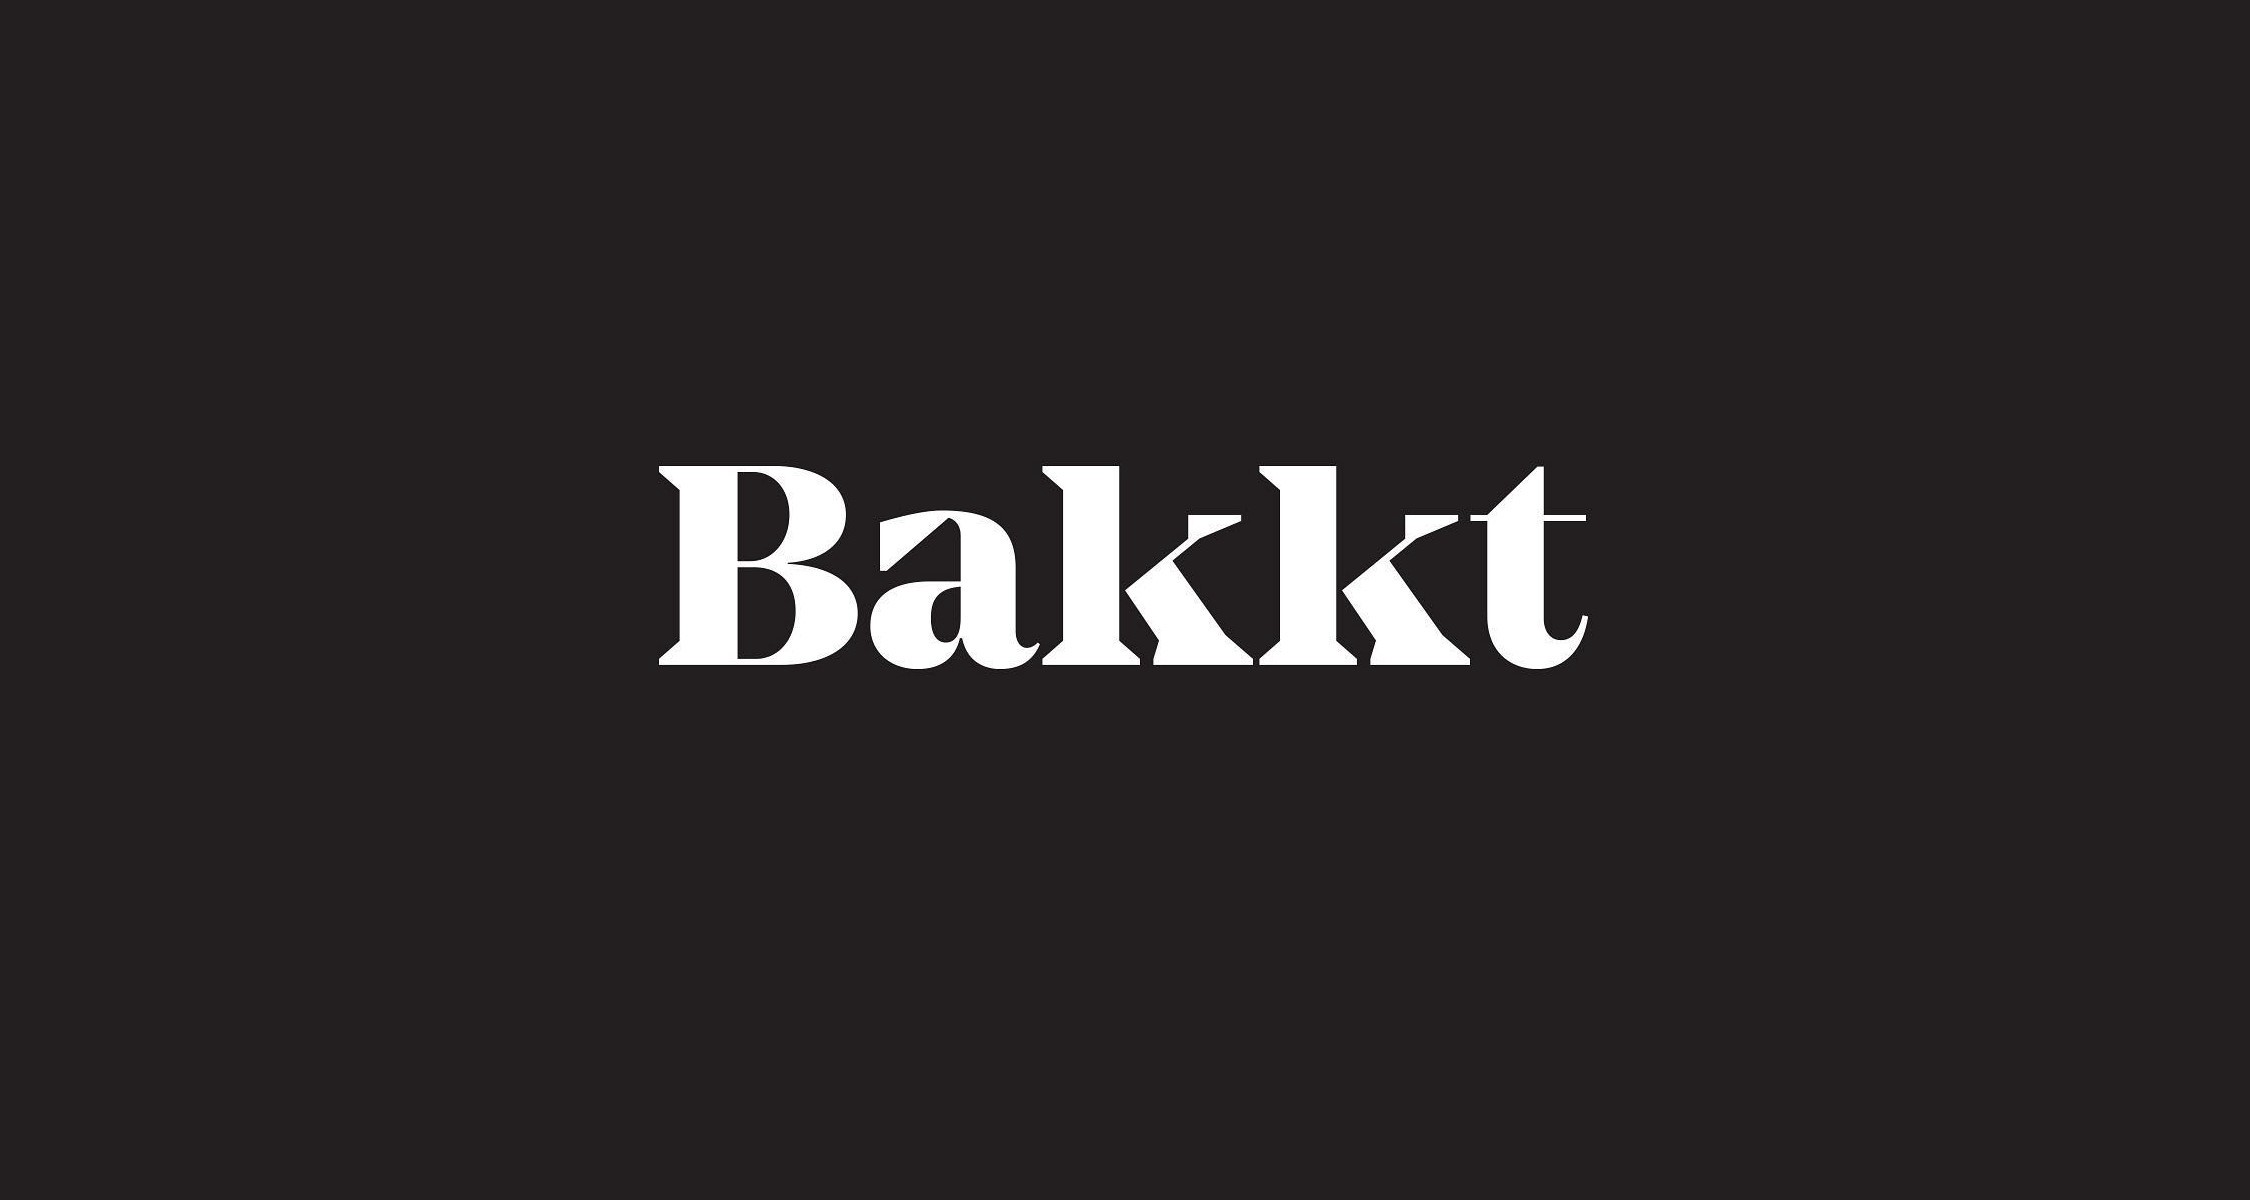 /bakkt-what-does-it-mean-for-bitcoin-aa8e7c5753b9 feature image